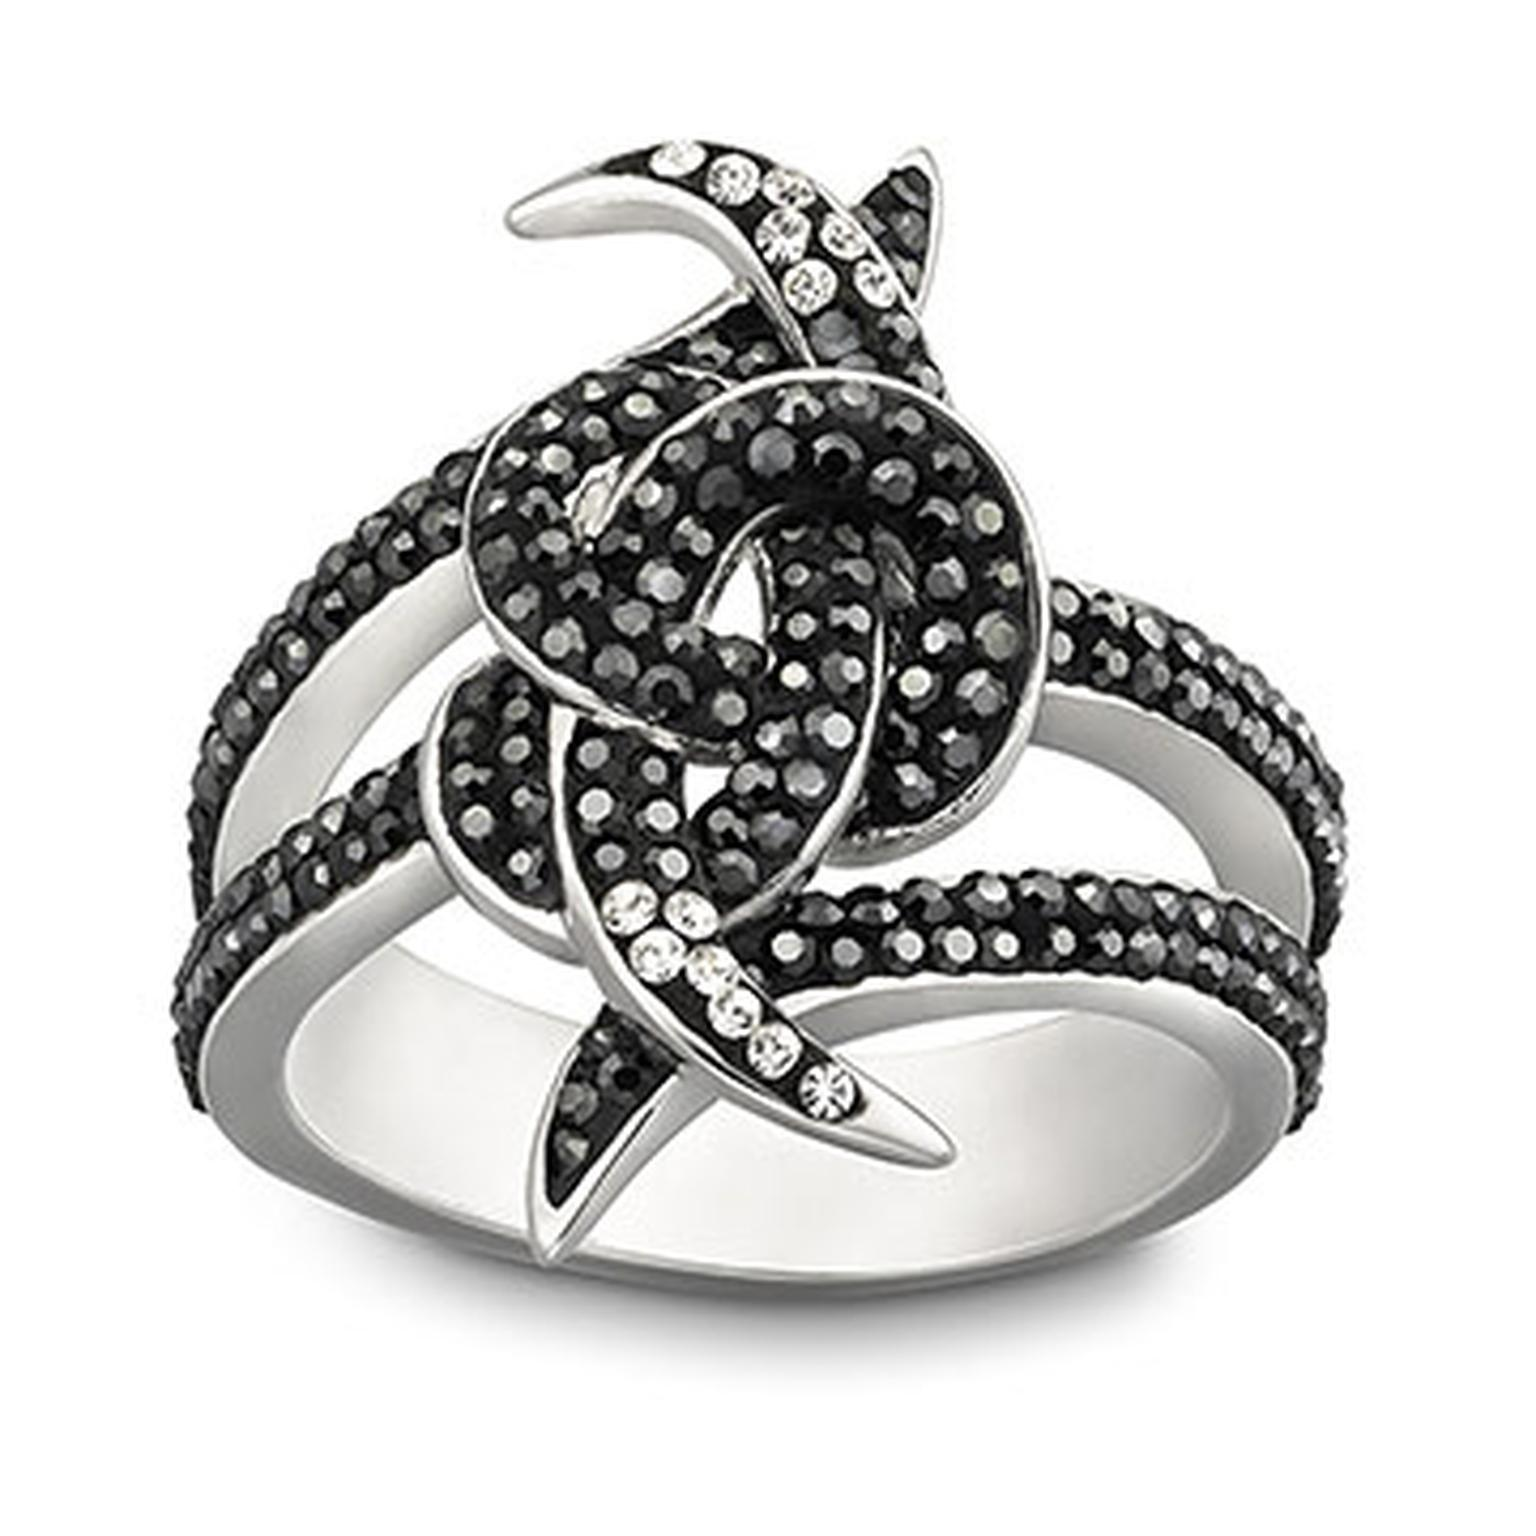 Stephen-Webster-Love-Knot-ring.jpg